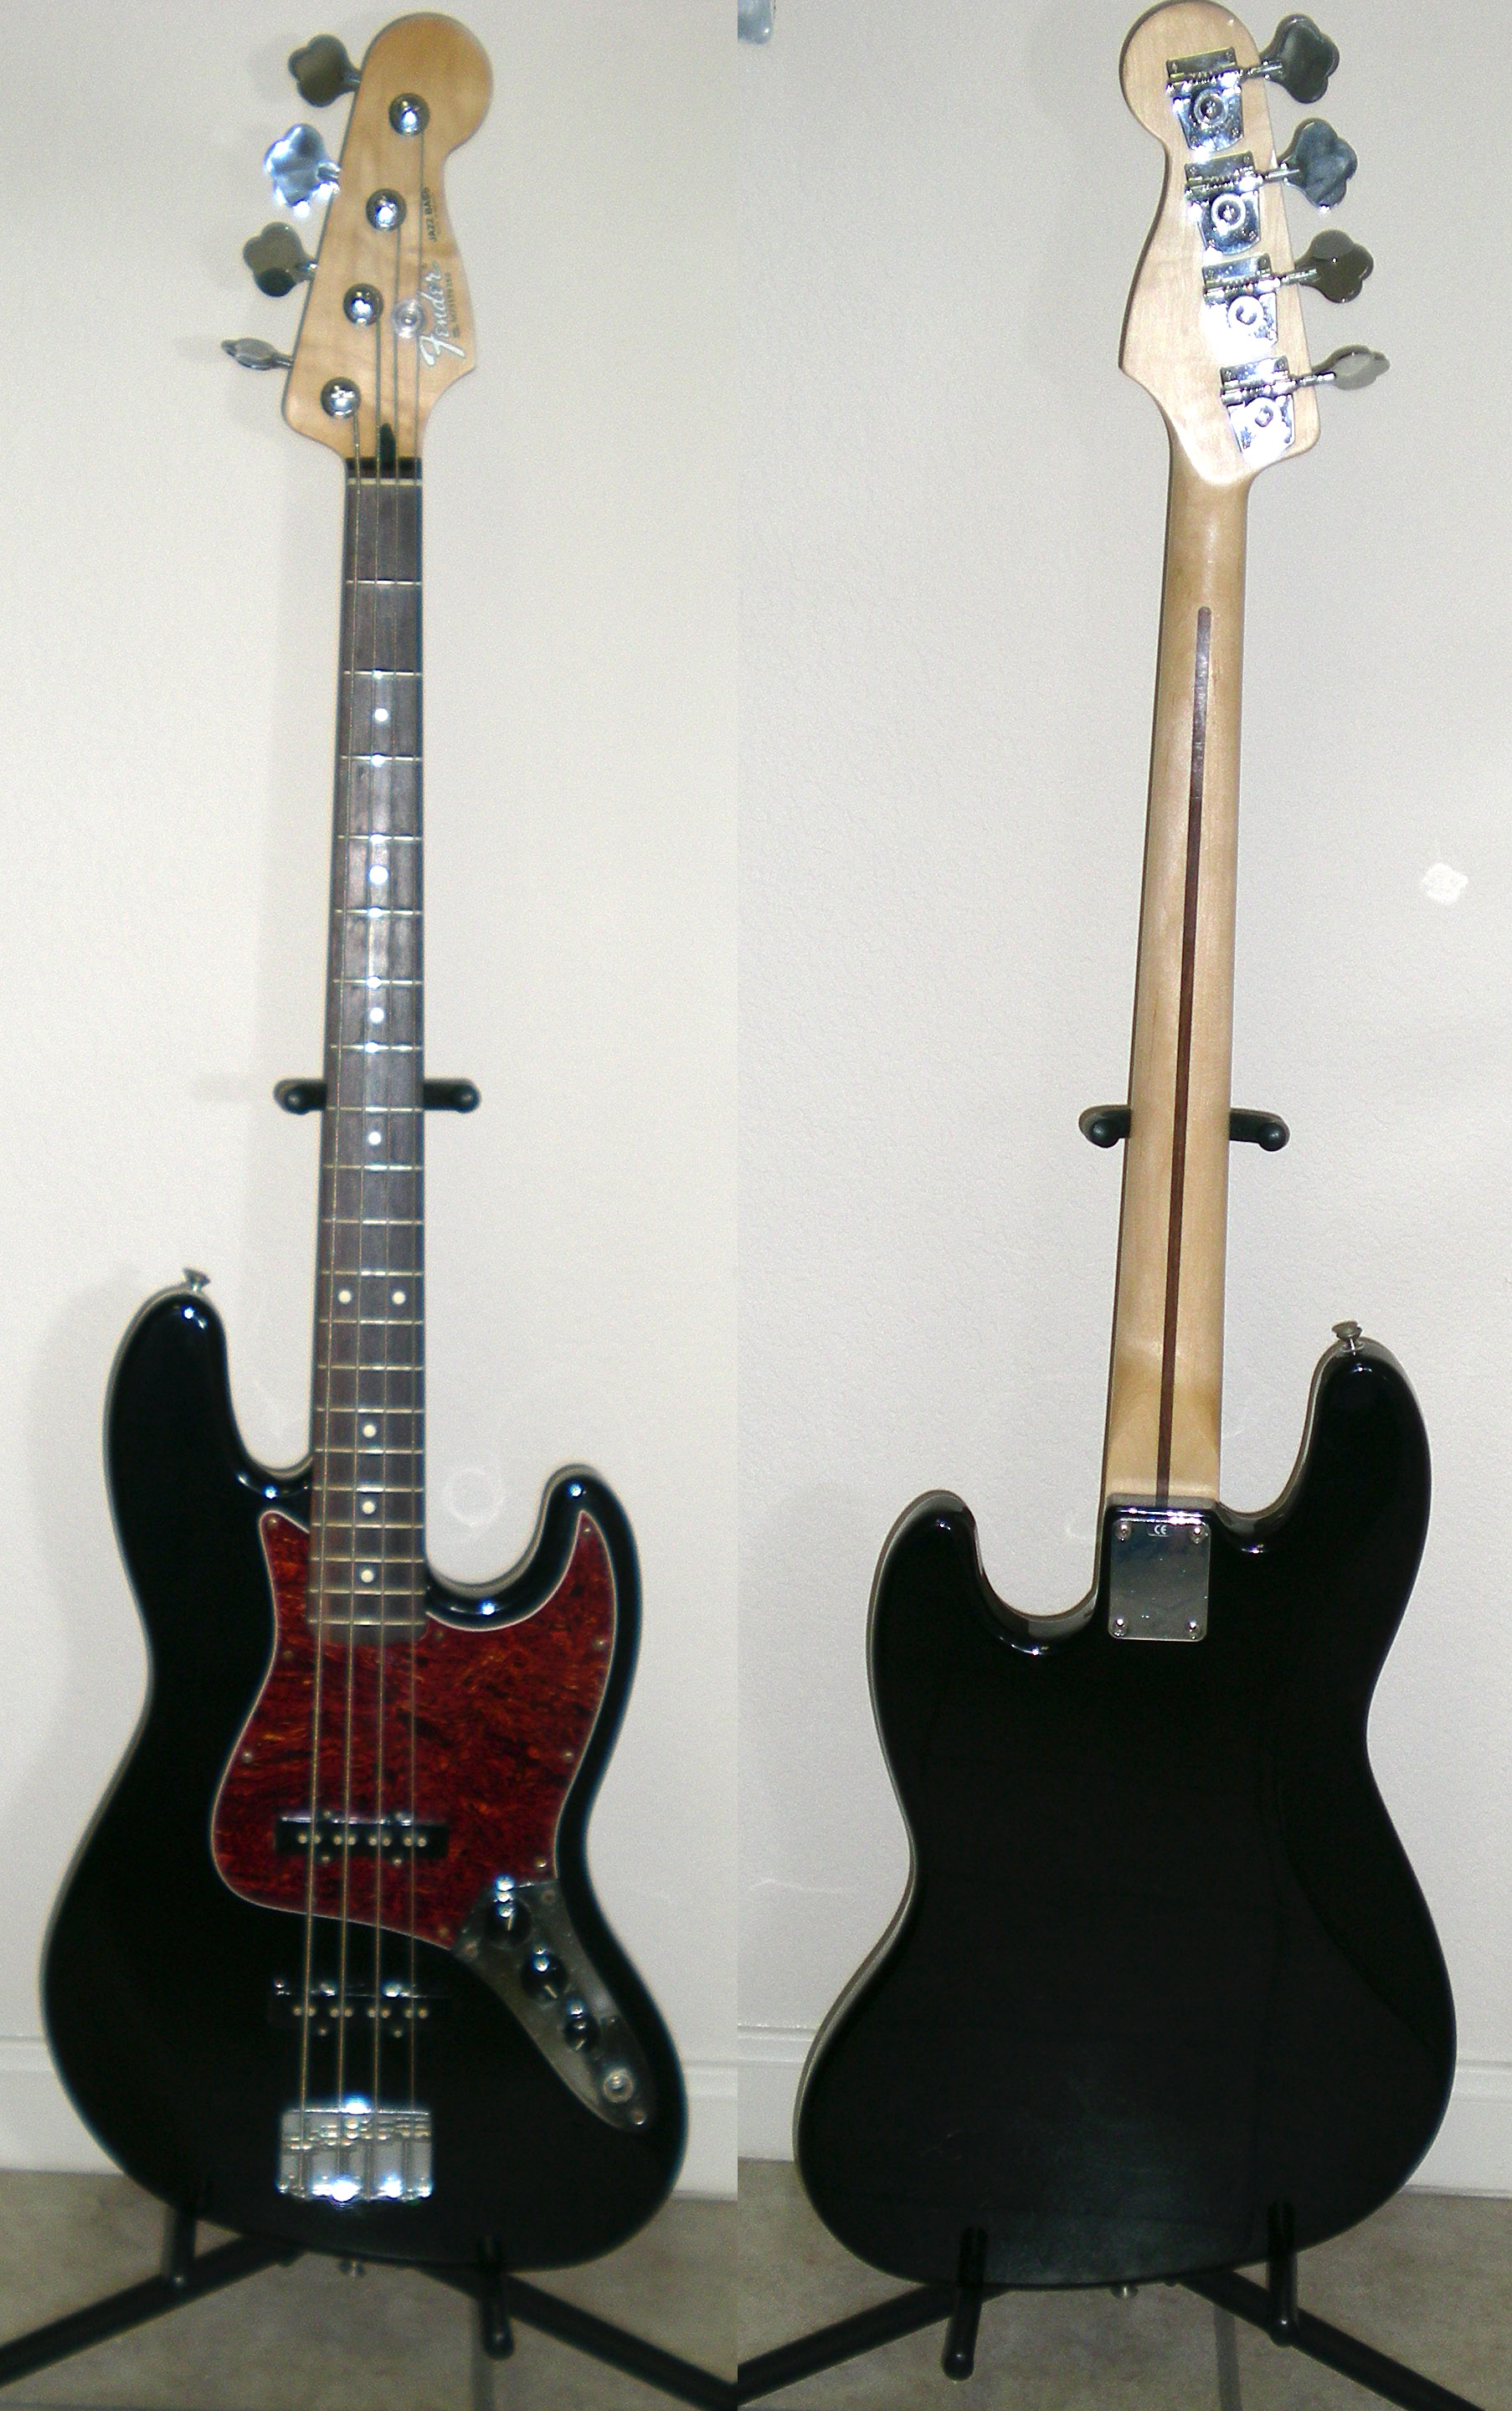 http://upload.wikimedia.org/wikipedia/commons/5/51/Fender_Jazz_Bass.jpg